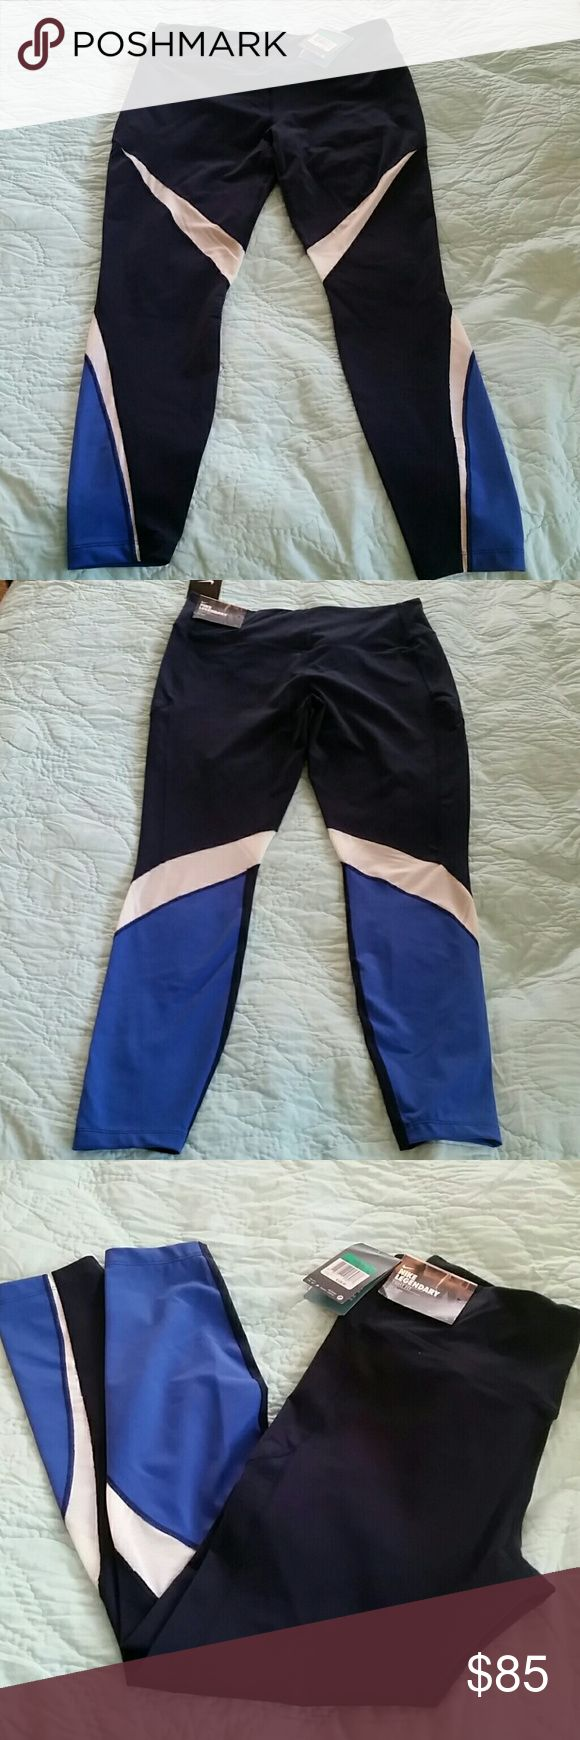 Nike DriFit Tight Fit Navy XL Training/ Run pants Navy, White and Royal Blue.  Dri Fit pants are the best thing ever.  Nylon/Spandex blend White part is mesh. Nike Pants Track Pants & Joggers